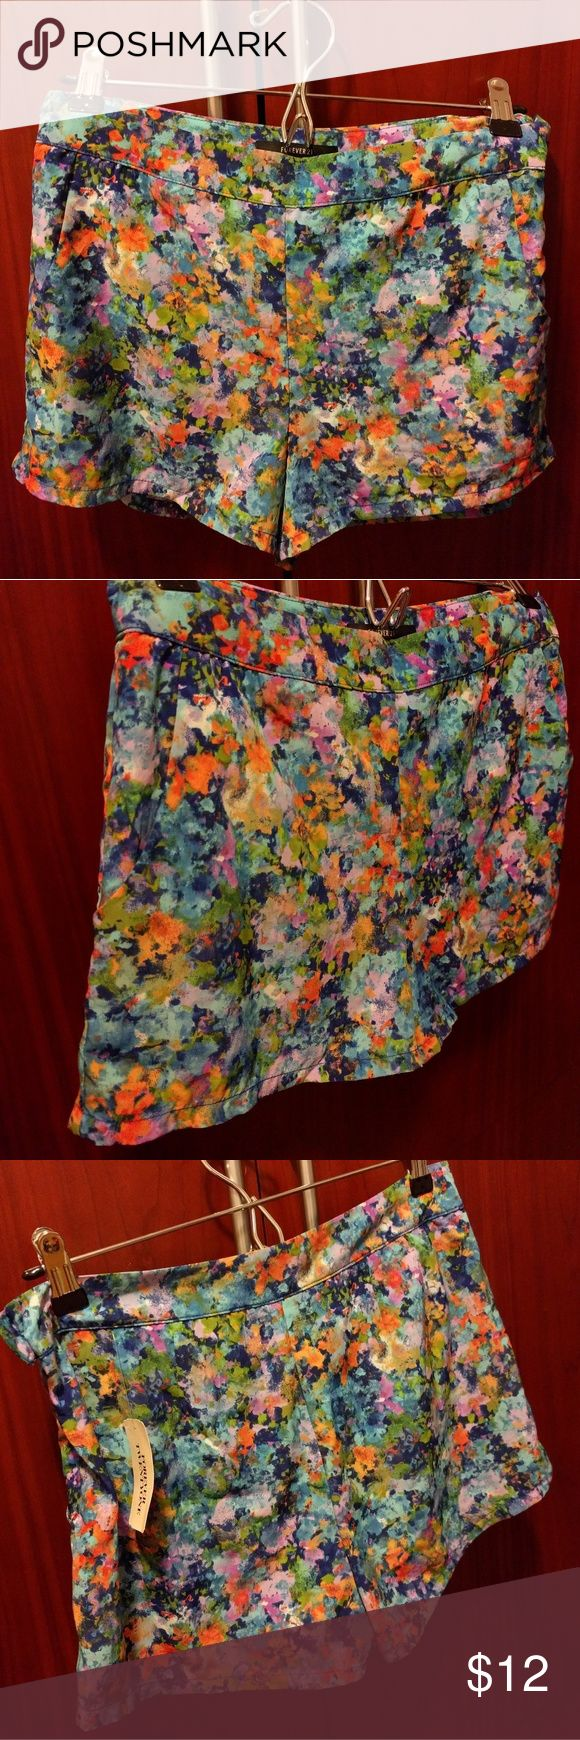 NWT Forever 21 watercolor print dressy shorts NEW WITH TAG - NEVER WORN  100% polyester  Really gorgeous water color abstract print  Loved this when I got it but it didn't fit me  Material does not stretch  I would suggest getting this if u fit a small....  Has a lining so it's not see through Forever 21 Shorts